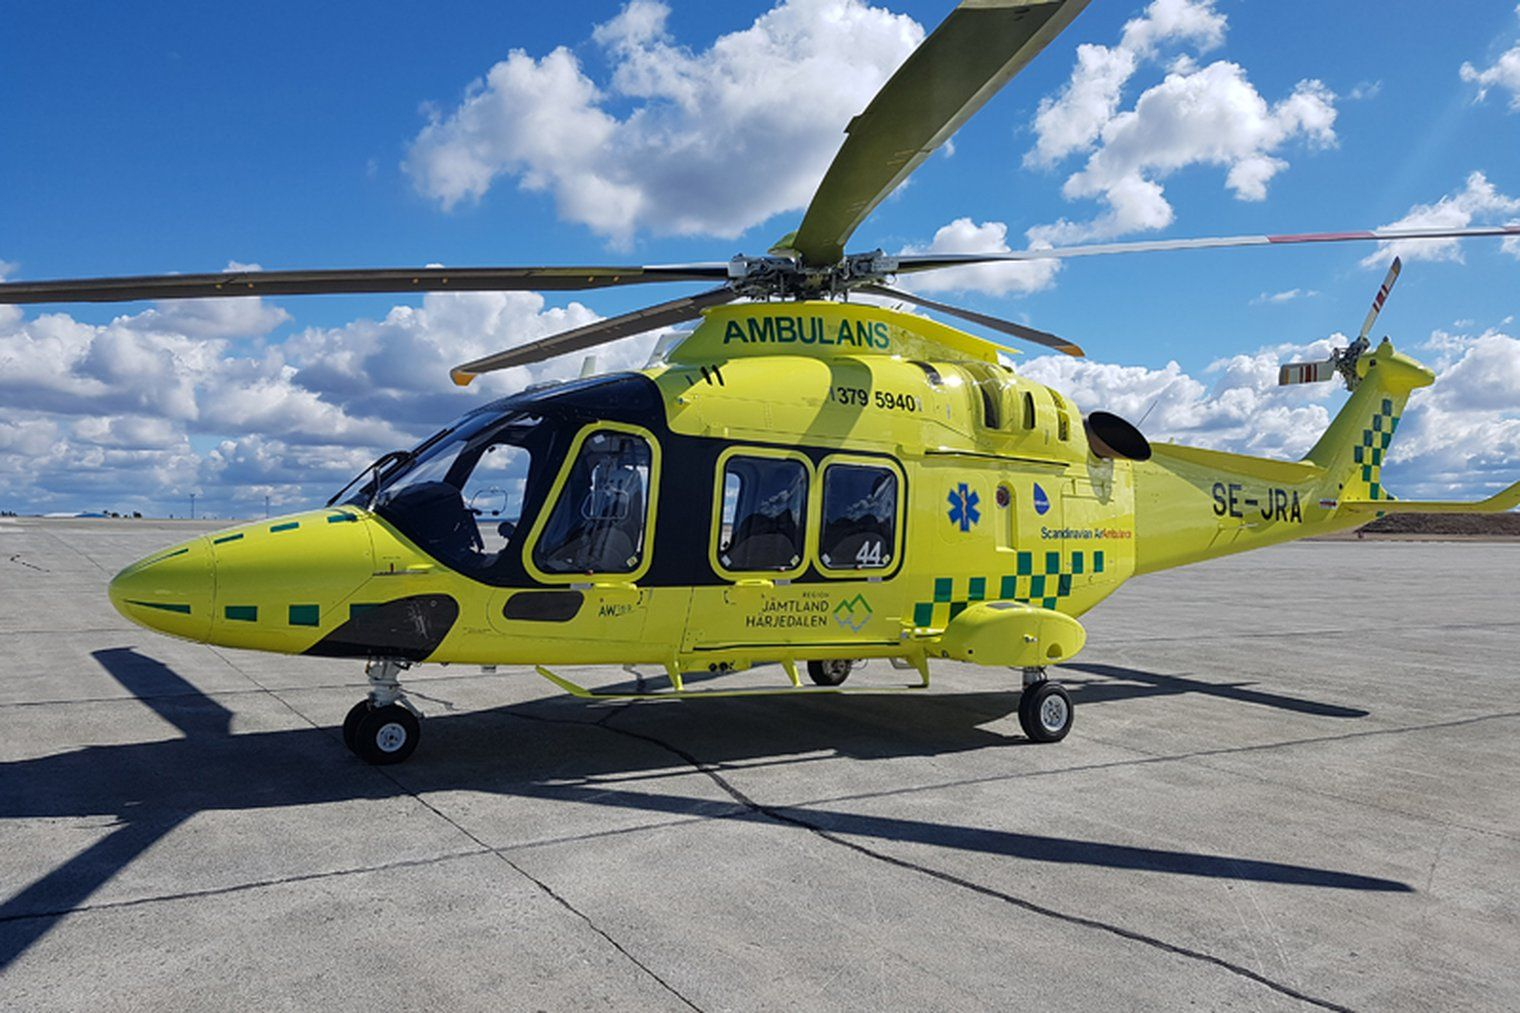 Babcock Saa Receives Air Ambulance Contract Shephard Media Ambulance Military Helicopter Defence